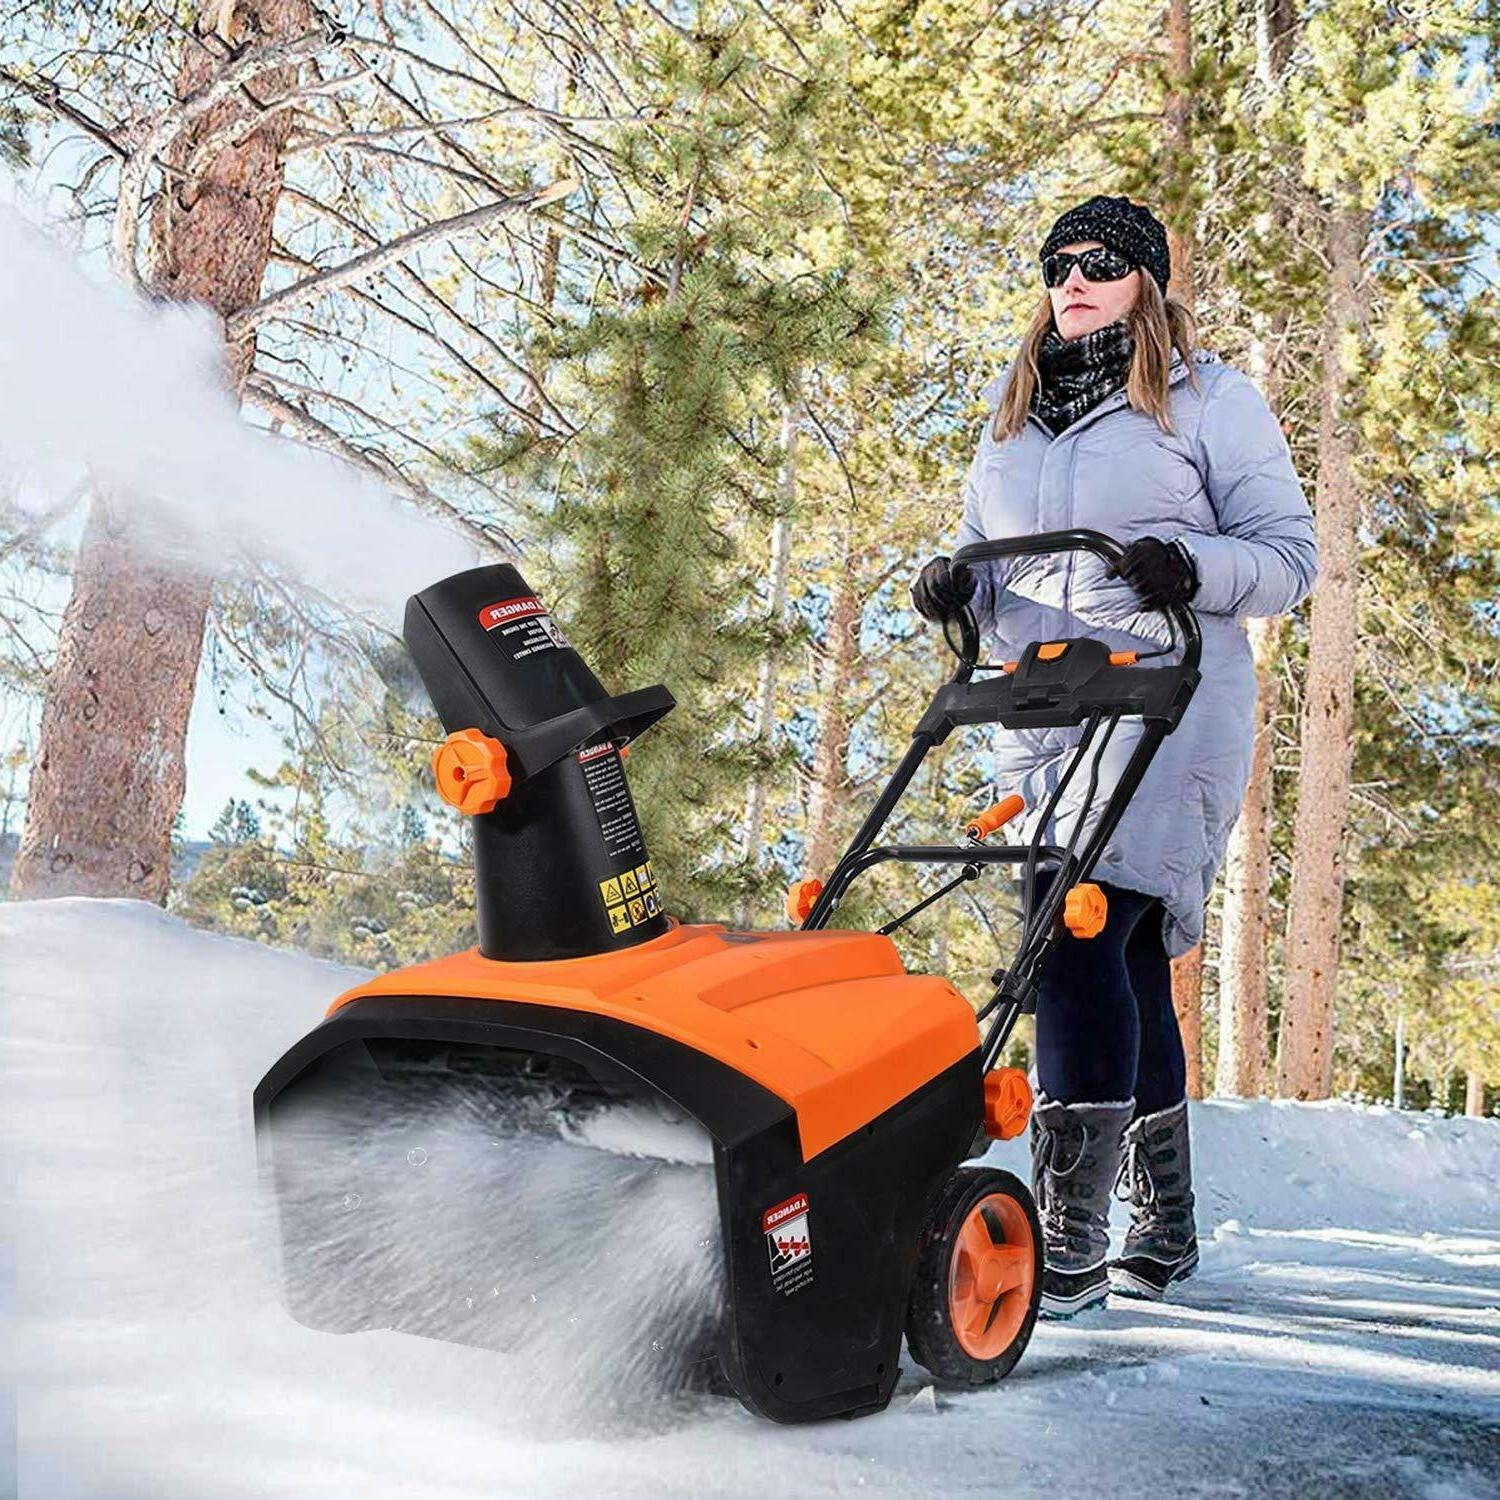 Amp Electric Snow Thrower, Auger